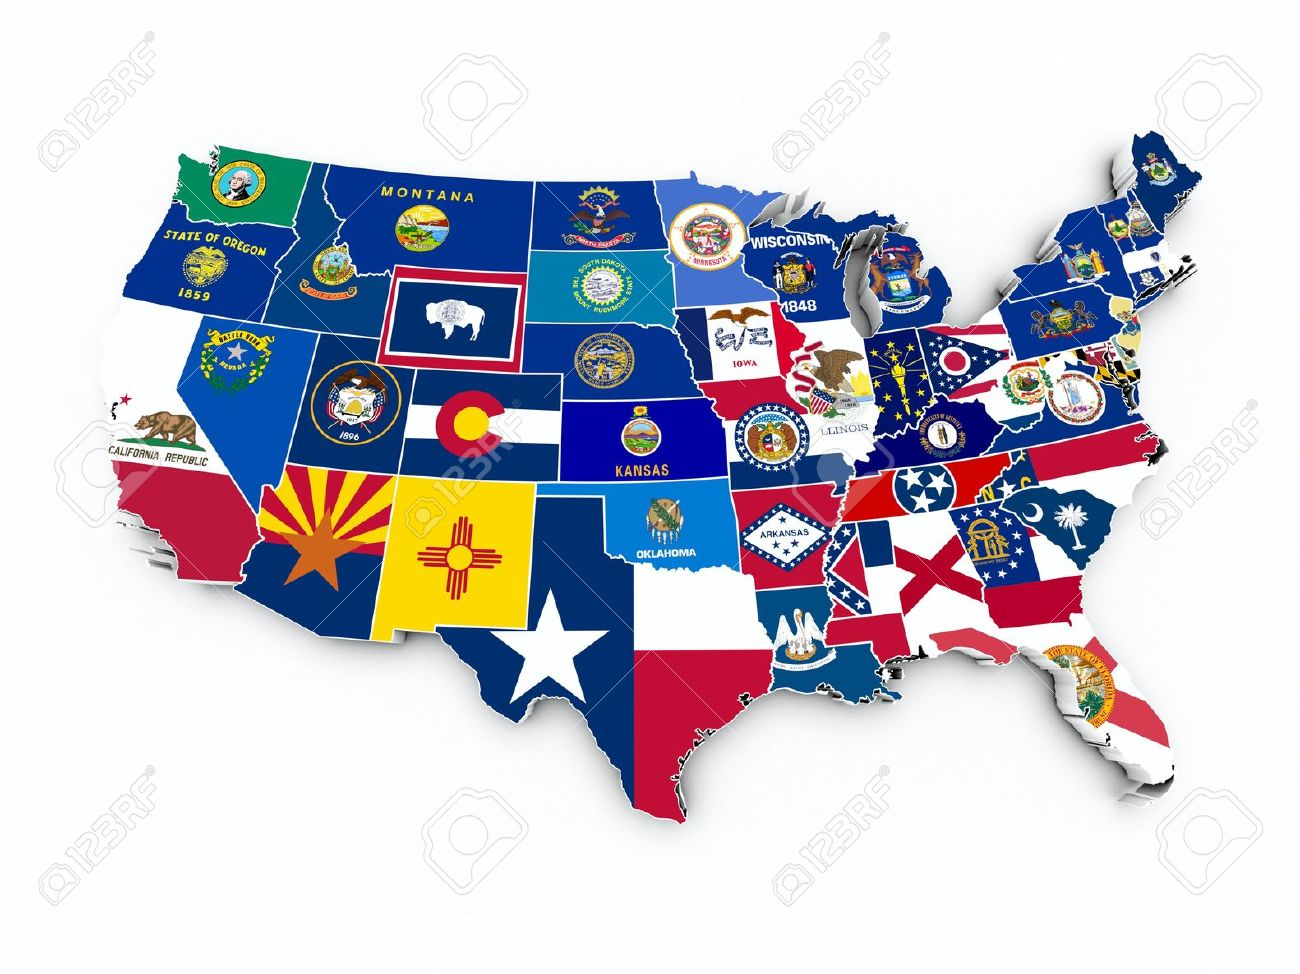 Midwest Usa Stock Photos Pictures Royalty Free Midwest Usa - Midwest usa map